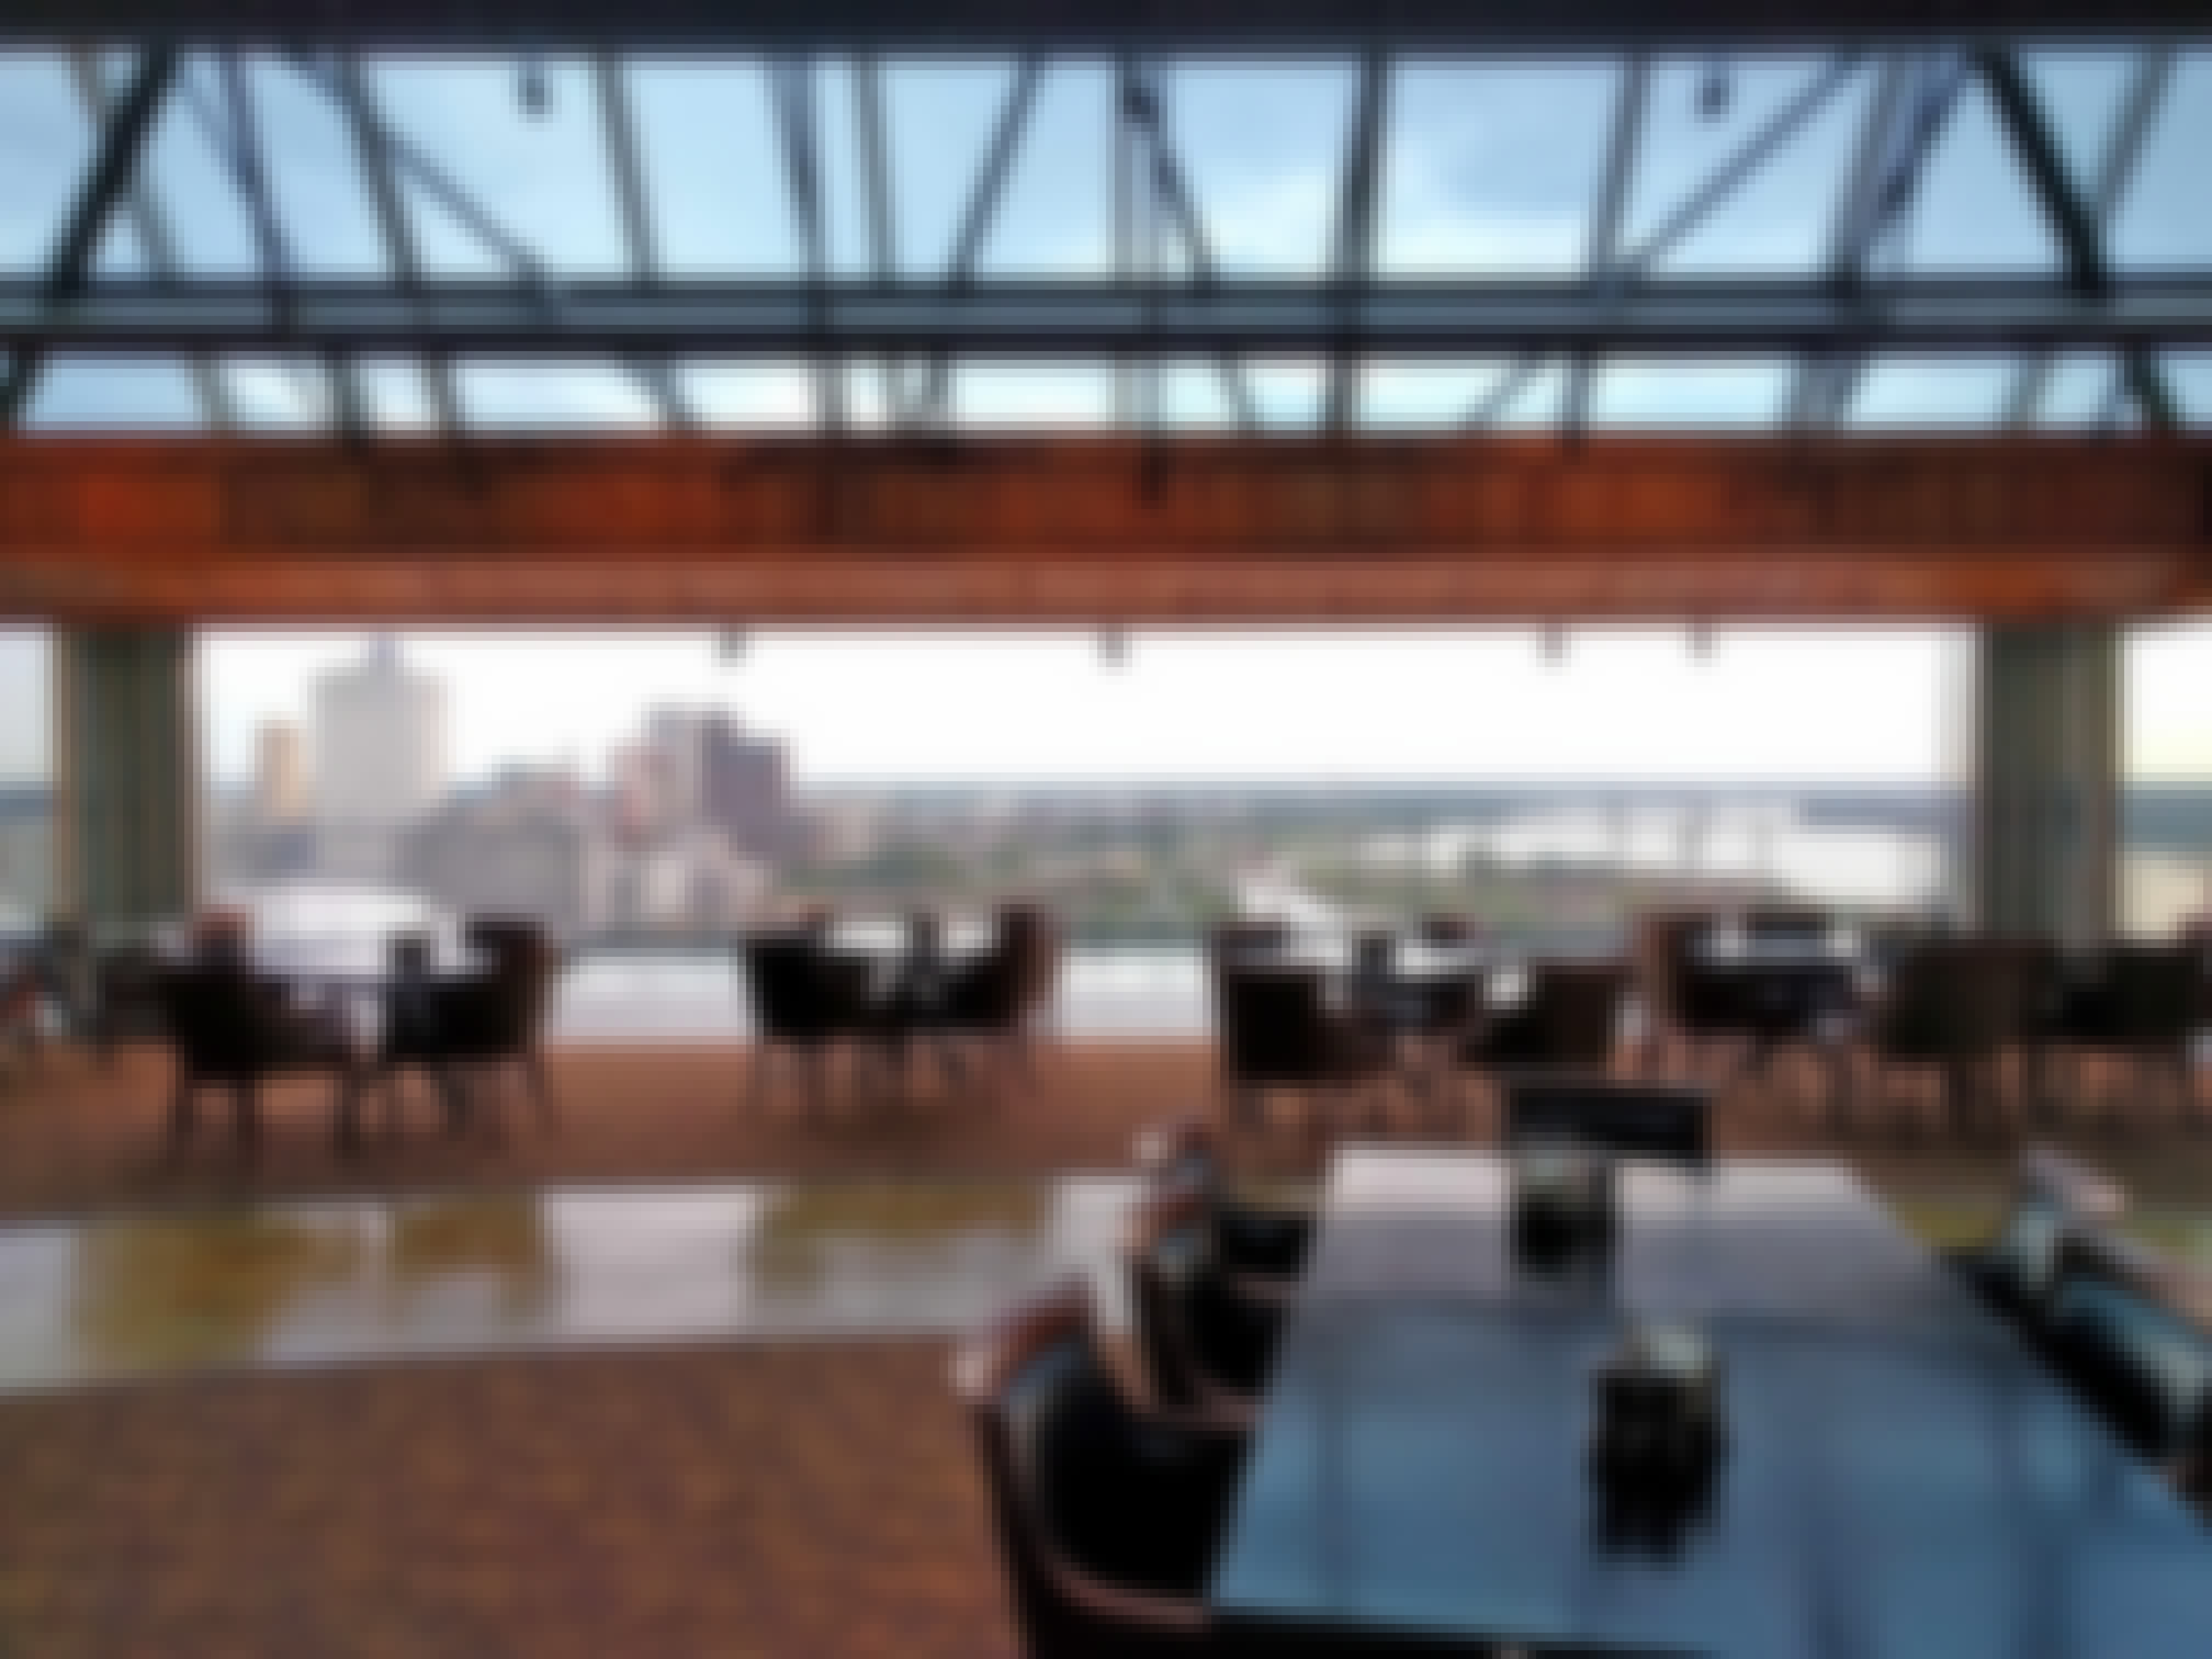 Looking-out-of-The-Lookout-restaurant-folding-glass-wall